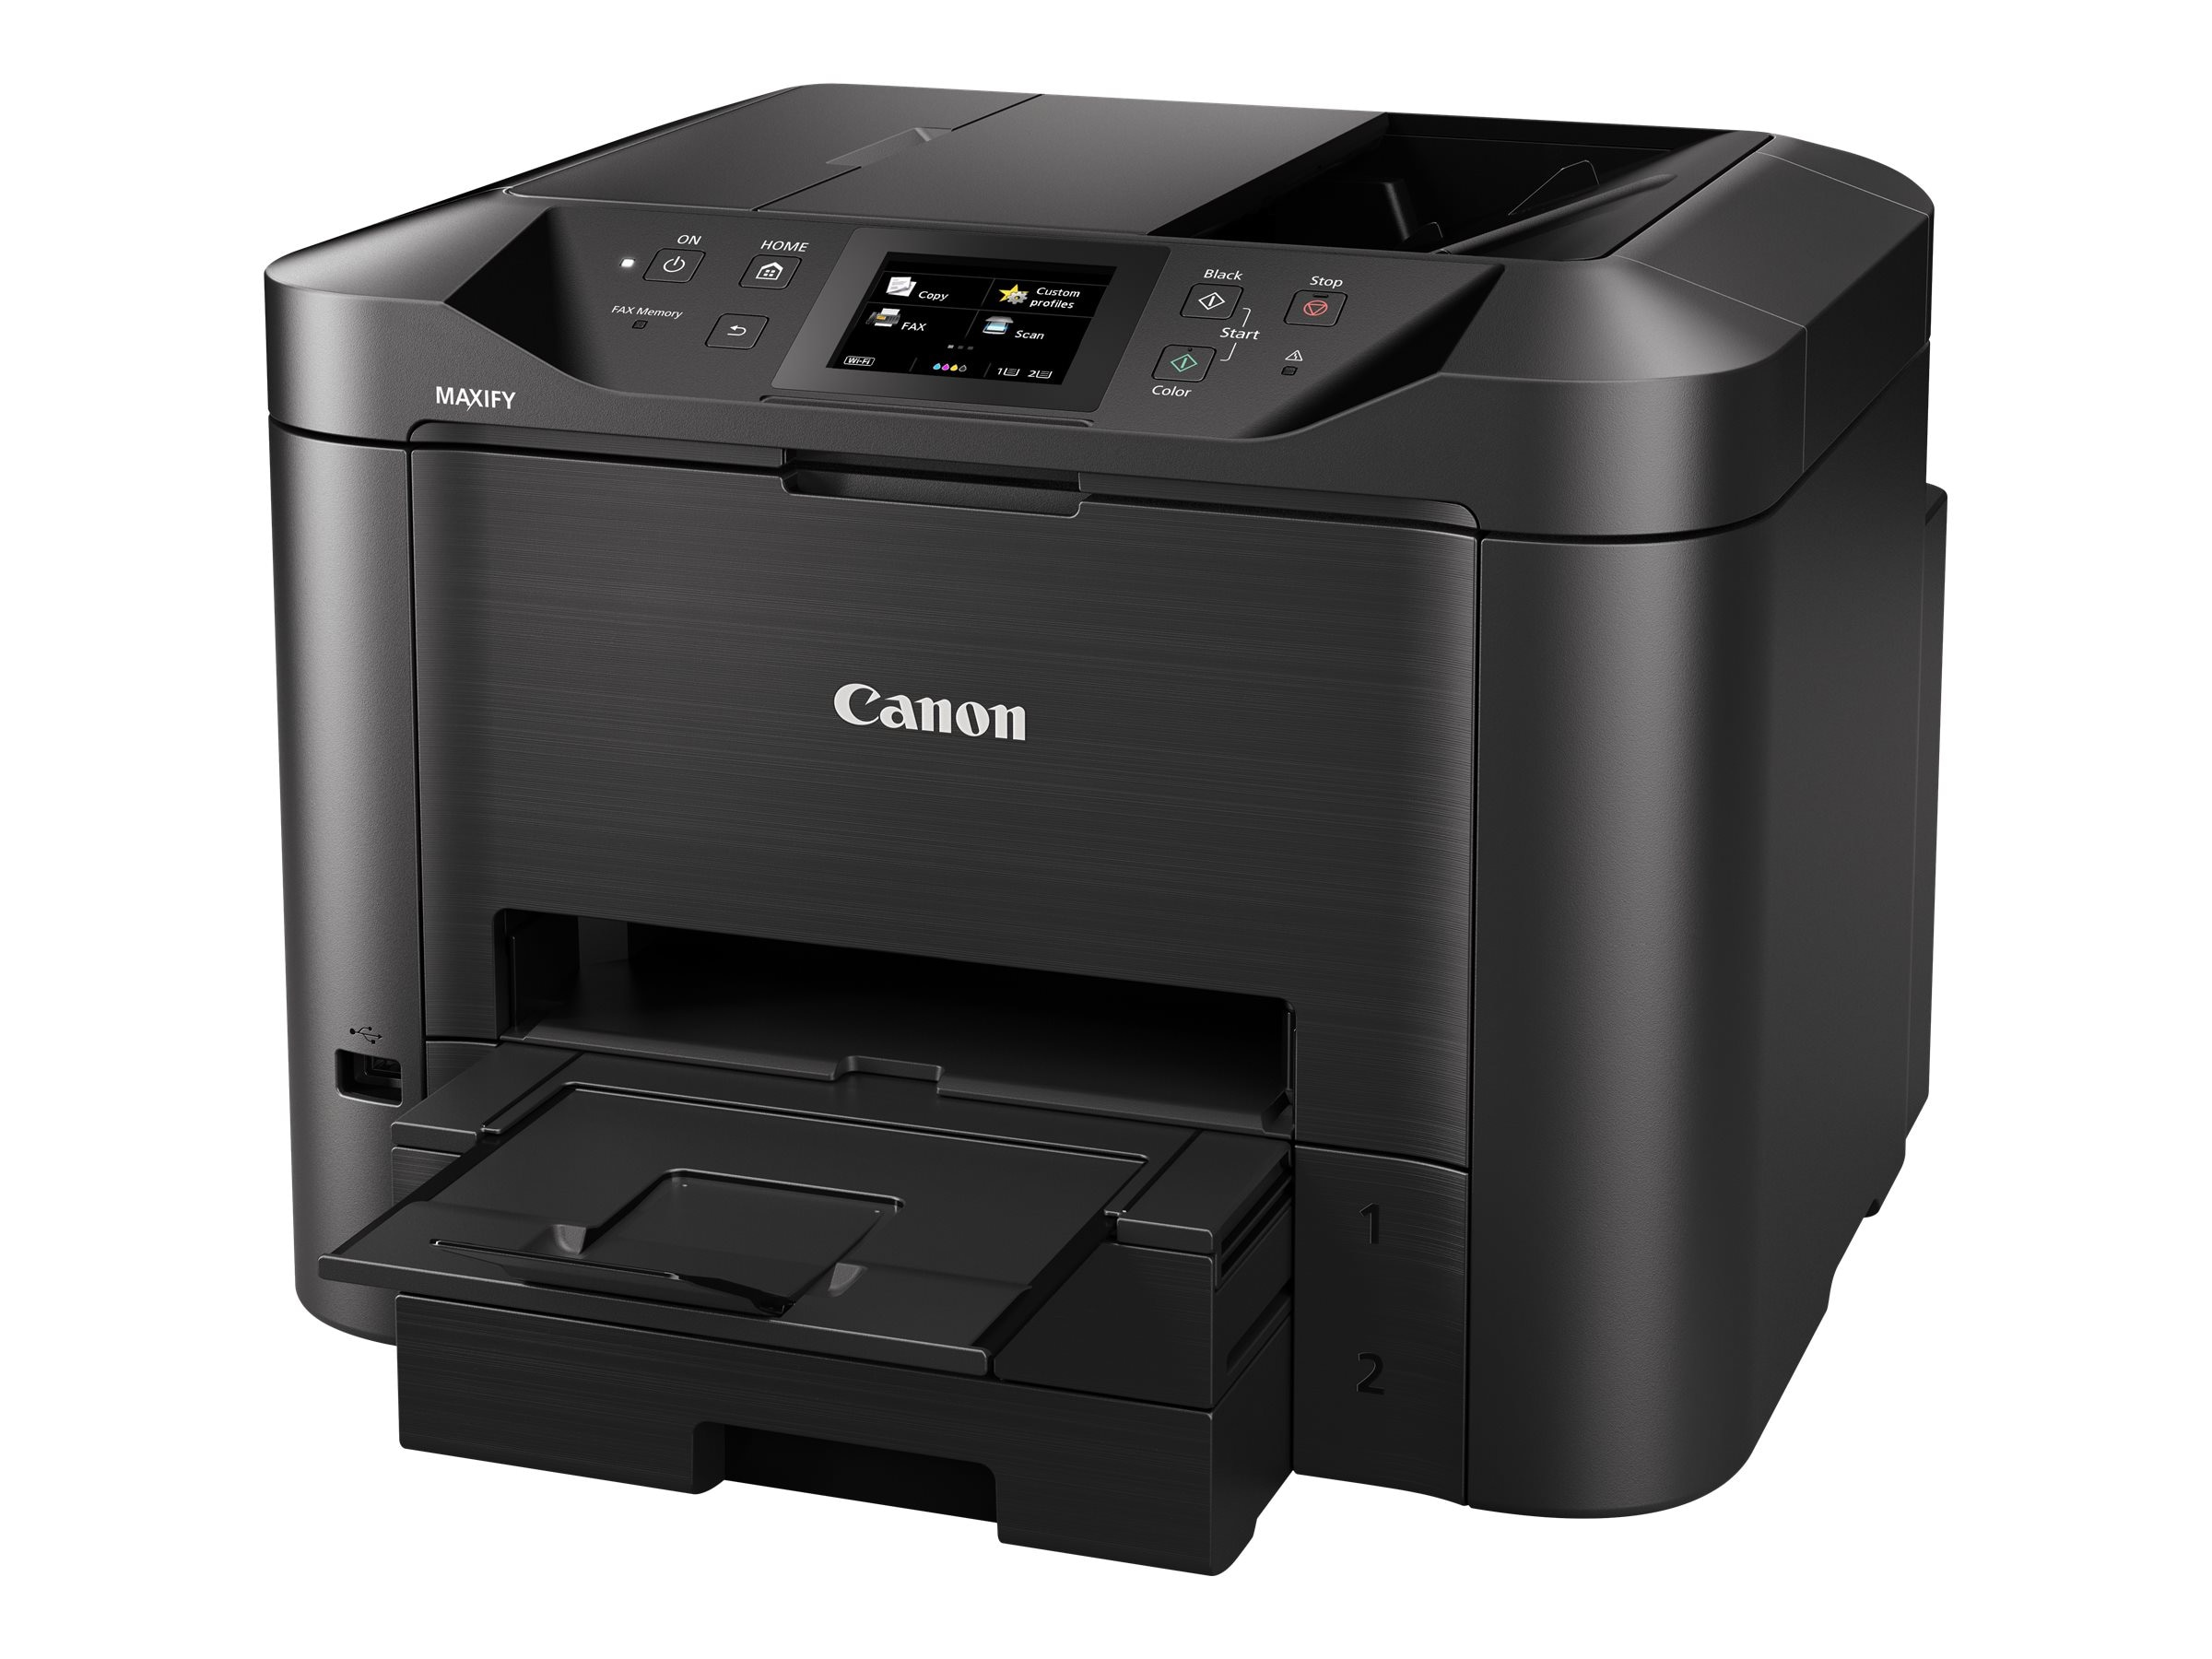 Canon MAXIFY MB5420 Wireless Small Office All-In-One Printer